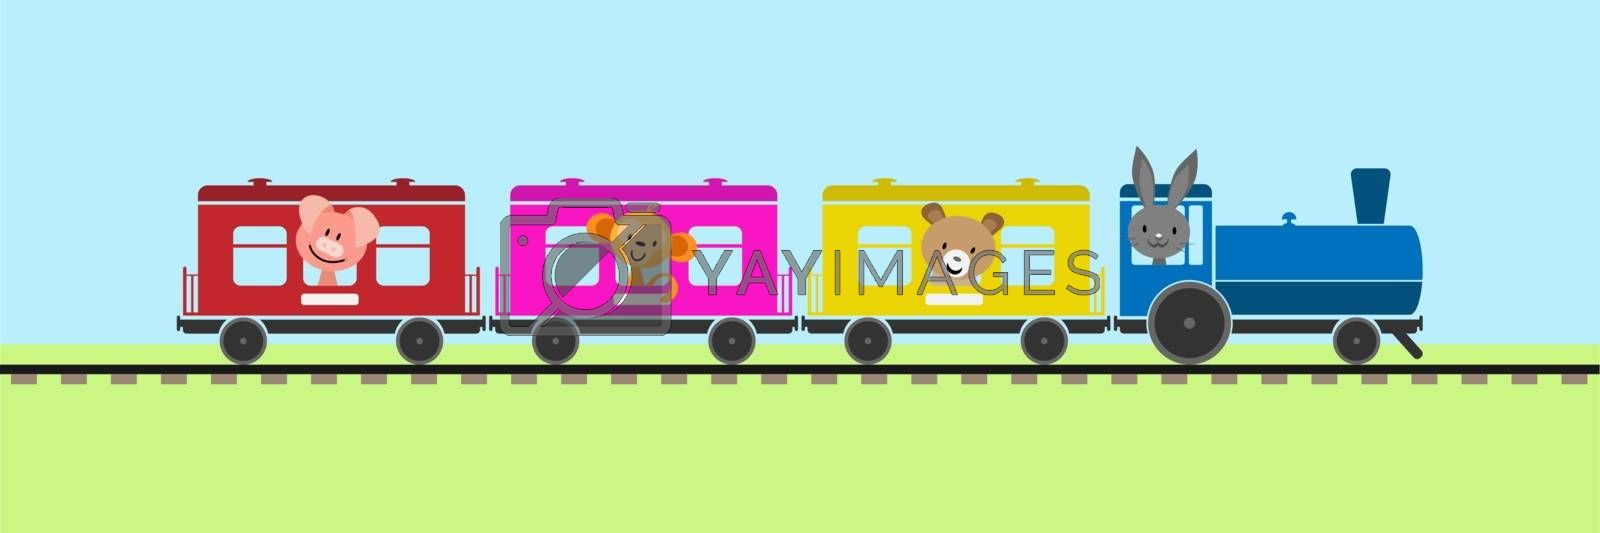 Simple colored children's train with cars and steam locomotive carrying animals